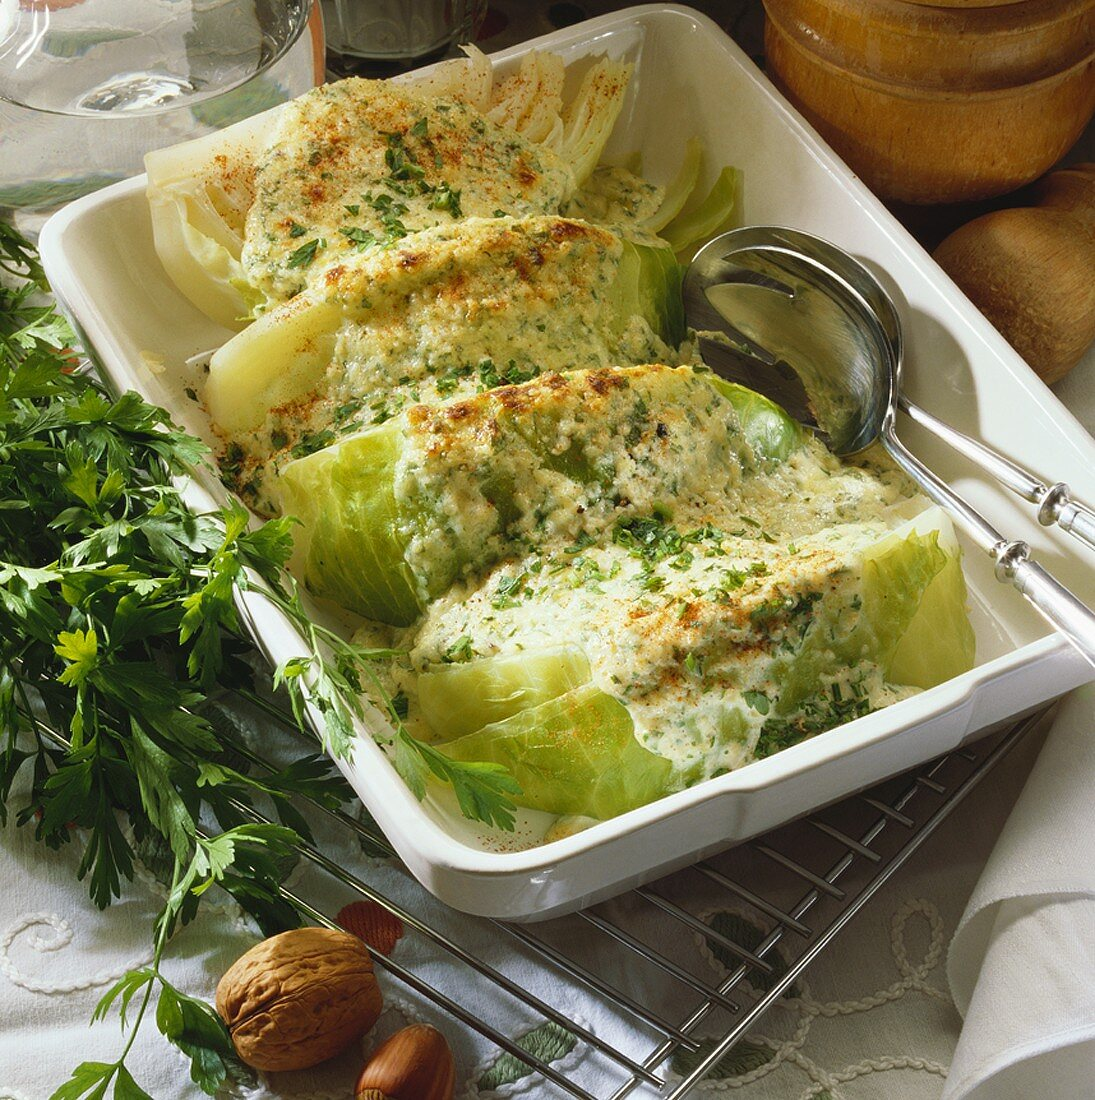 Baked cabbage with nut topping